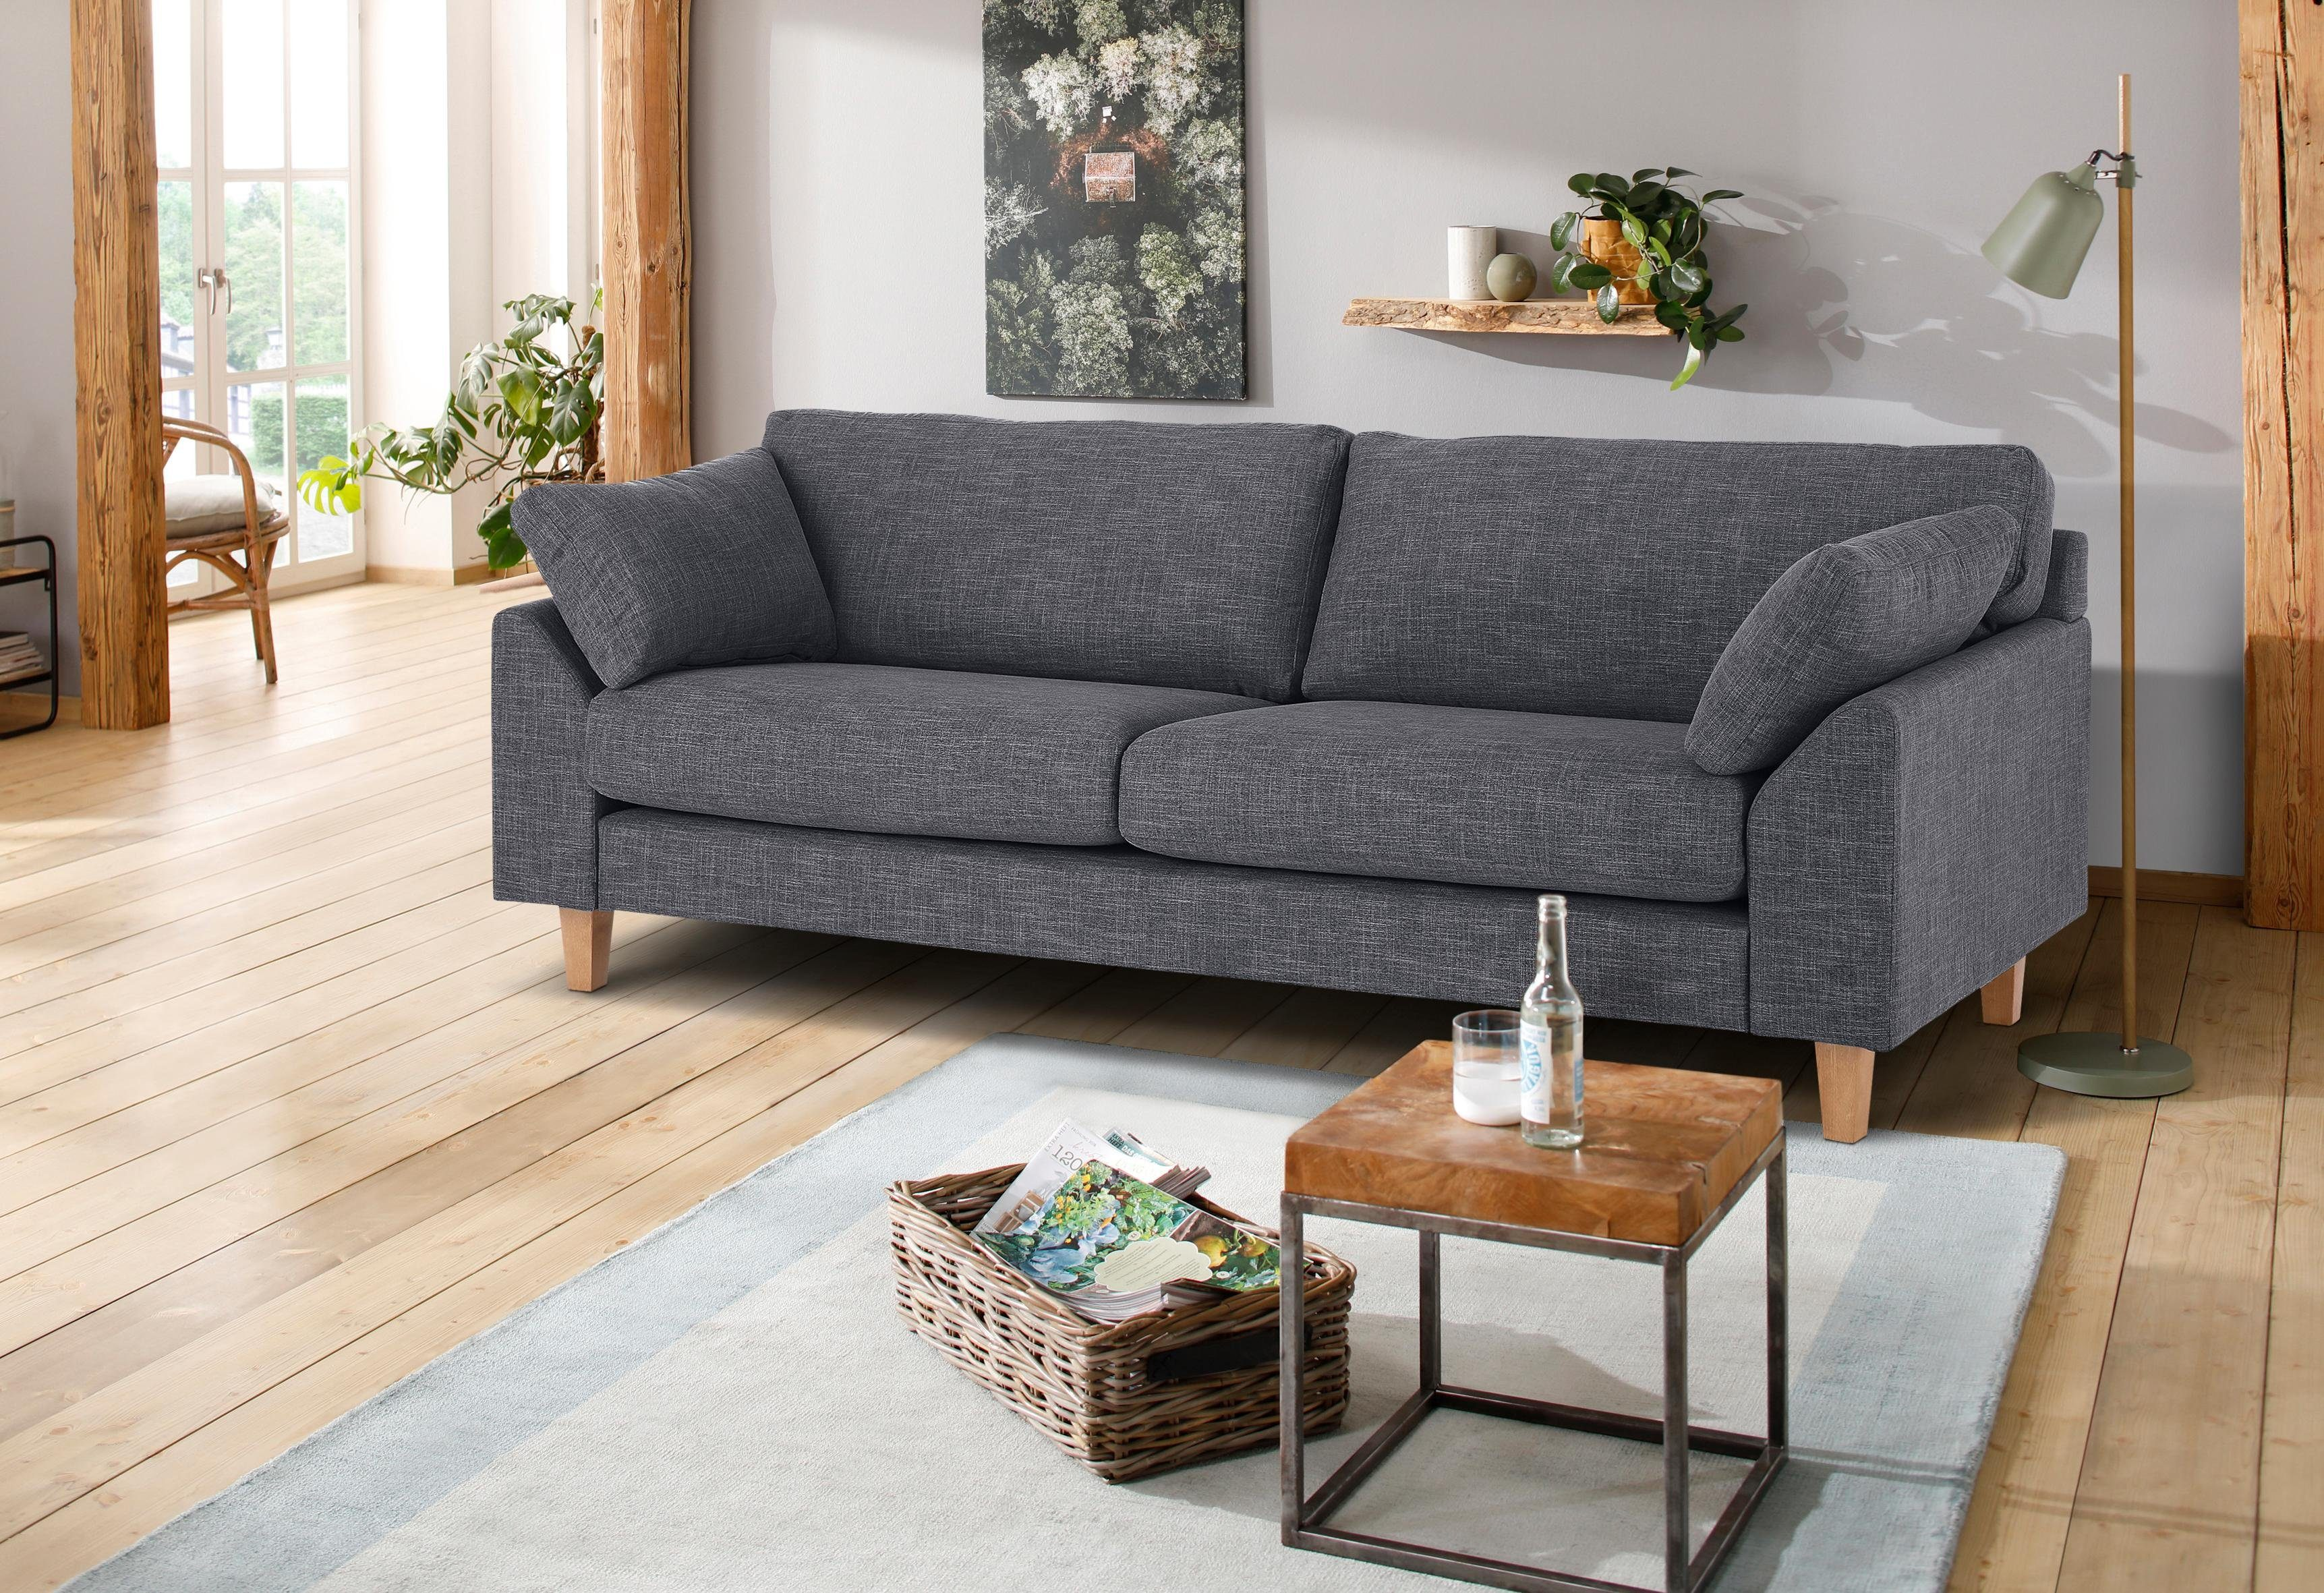 Premium Collection By Home Affaire Couchtisch Premium Collection By Home Affaire 3-sitzer »garda« Online ...